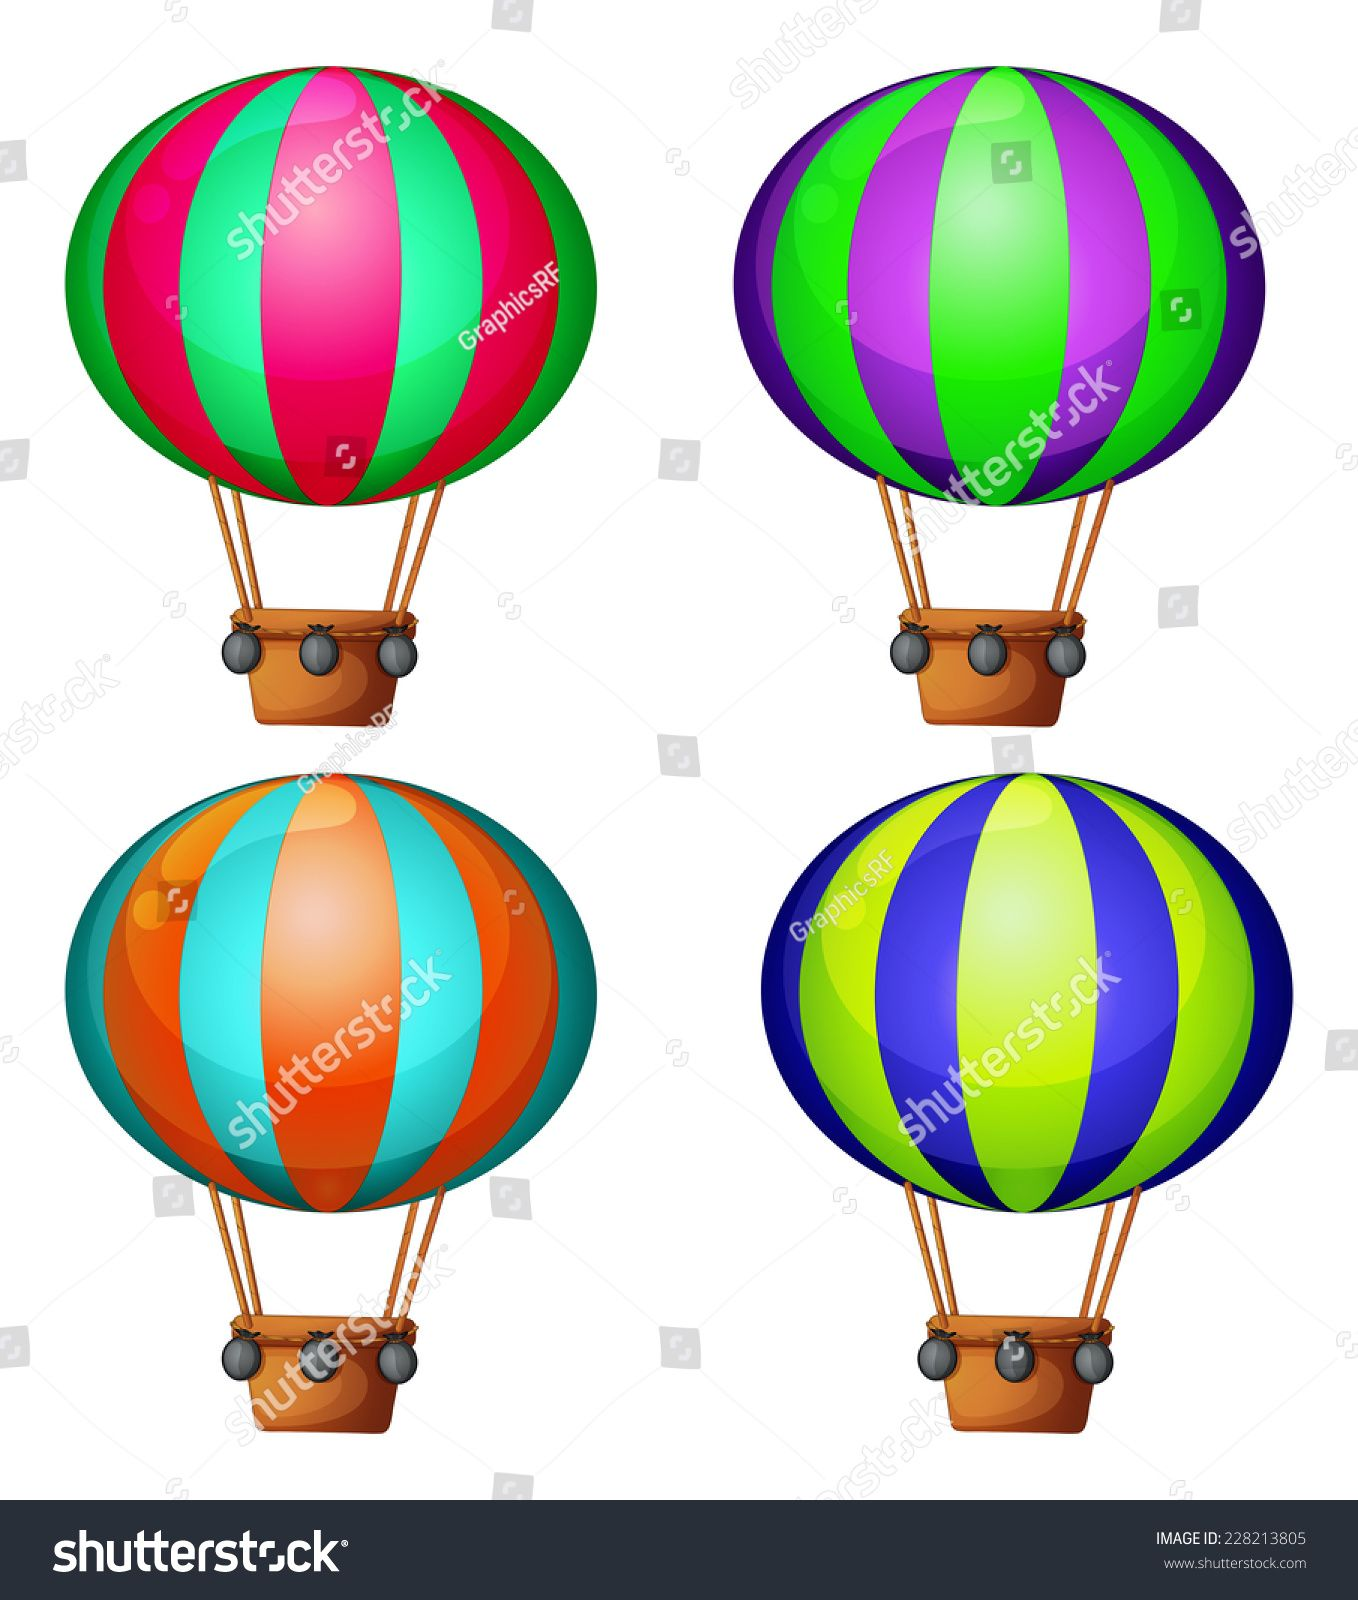 Set of 4 hot air balloons #Ad , #Ad, #hot#Set#balloons#air